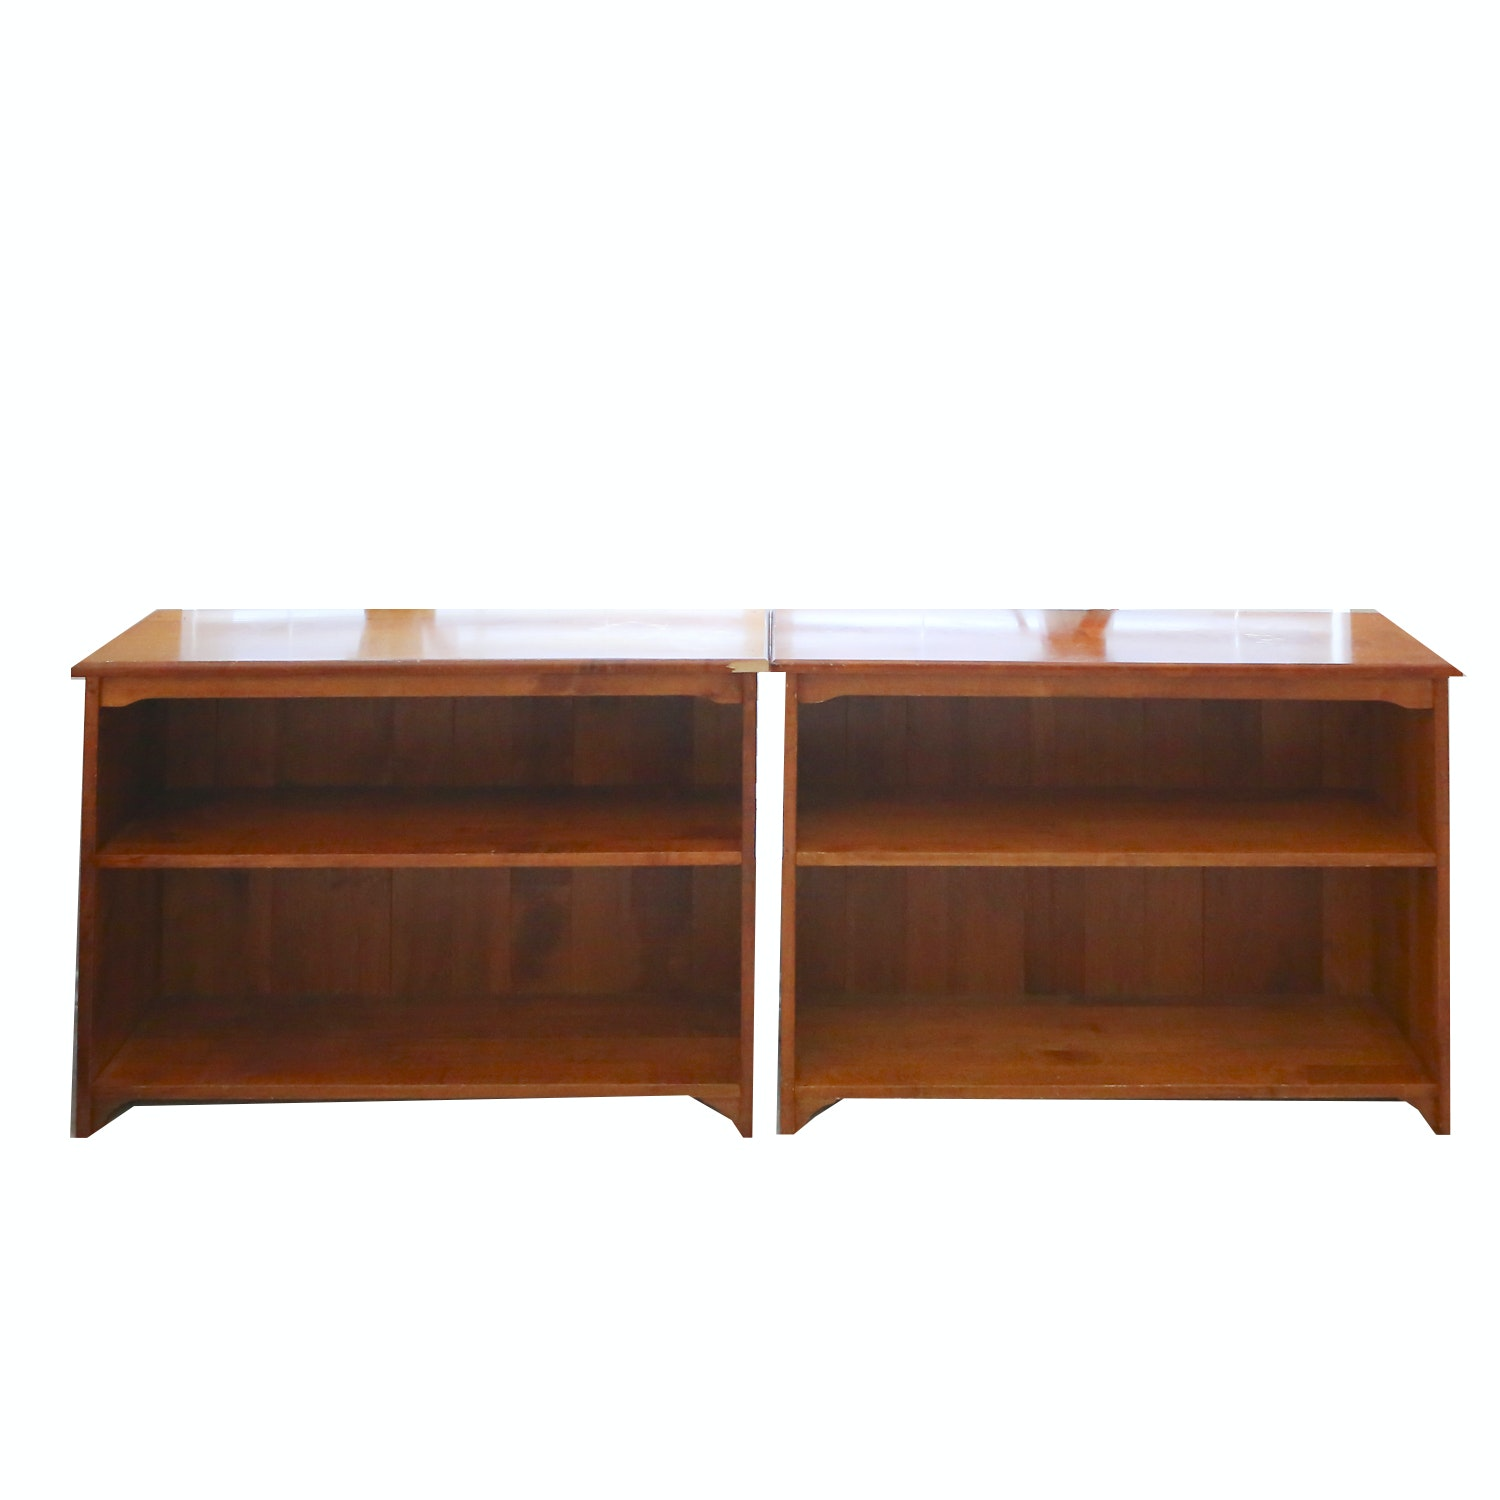 Pair of Low Wooden Shelves